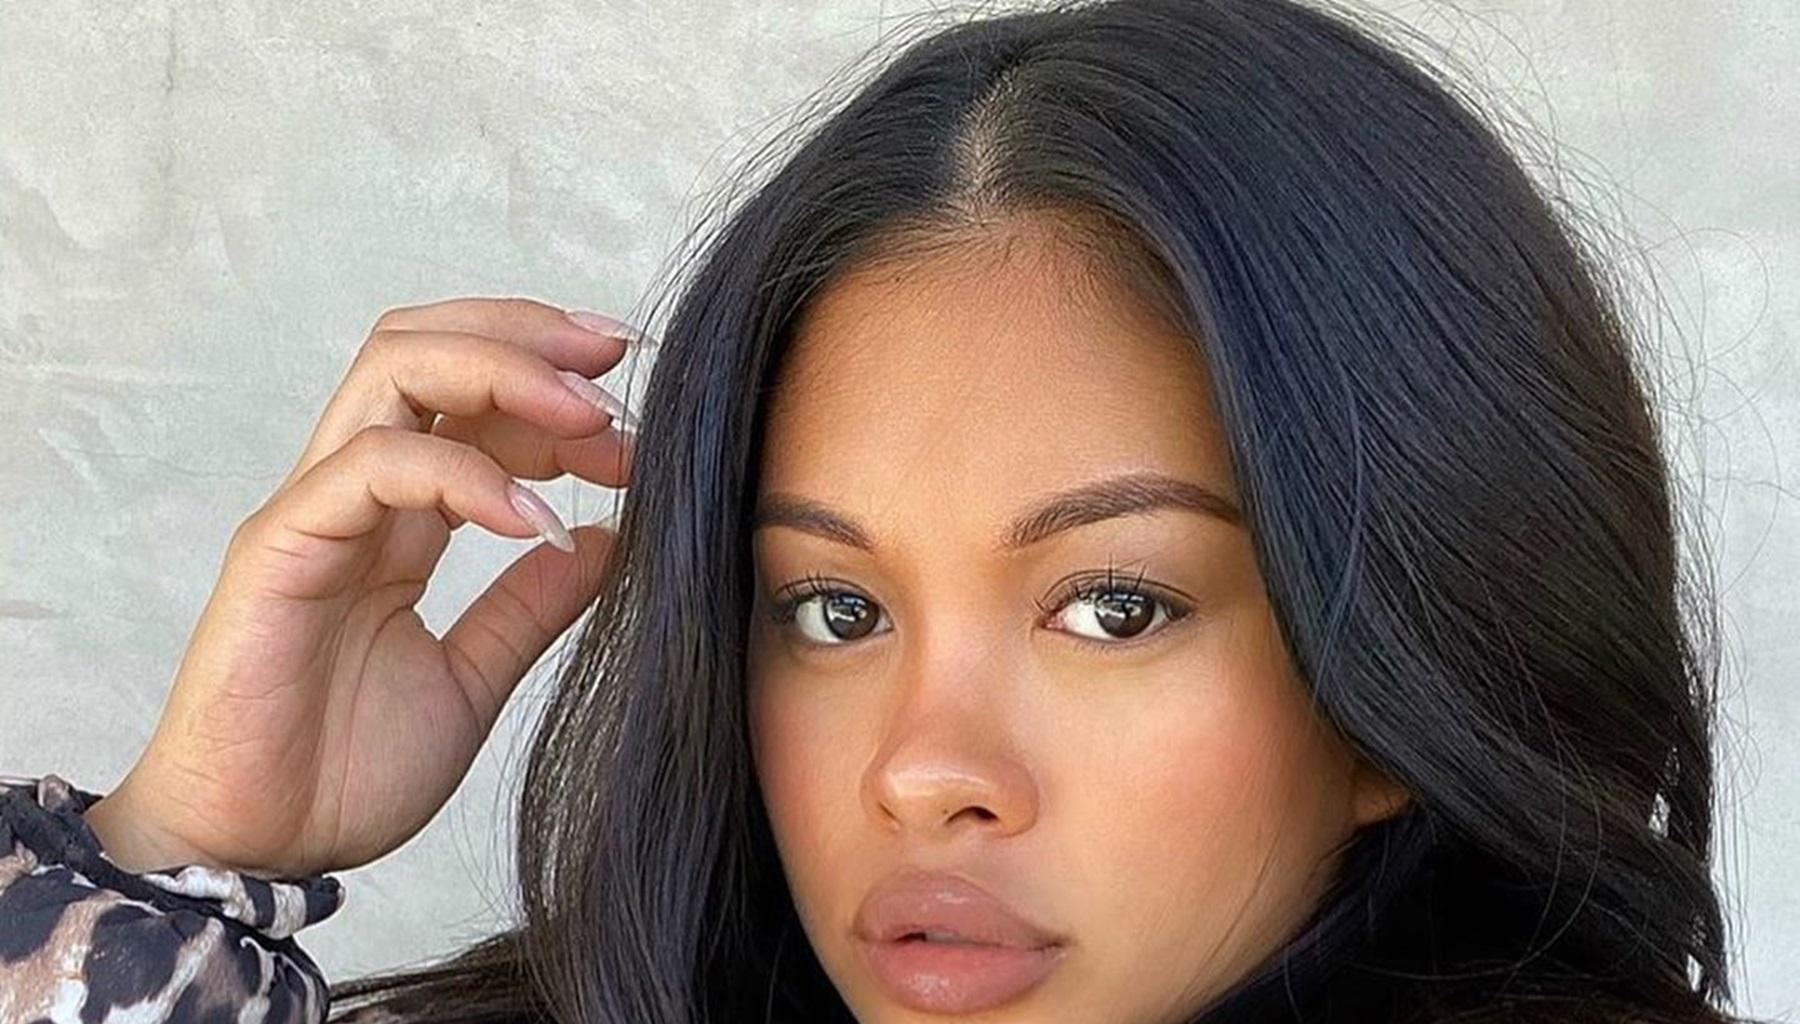 Chris Brown's Baby Mama, Ammika Harris, Lands In Trouble For Posting This Sizzling Photo Where She Leaves Nothing To The Imagination After Giving Birth